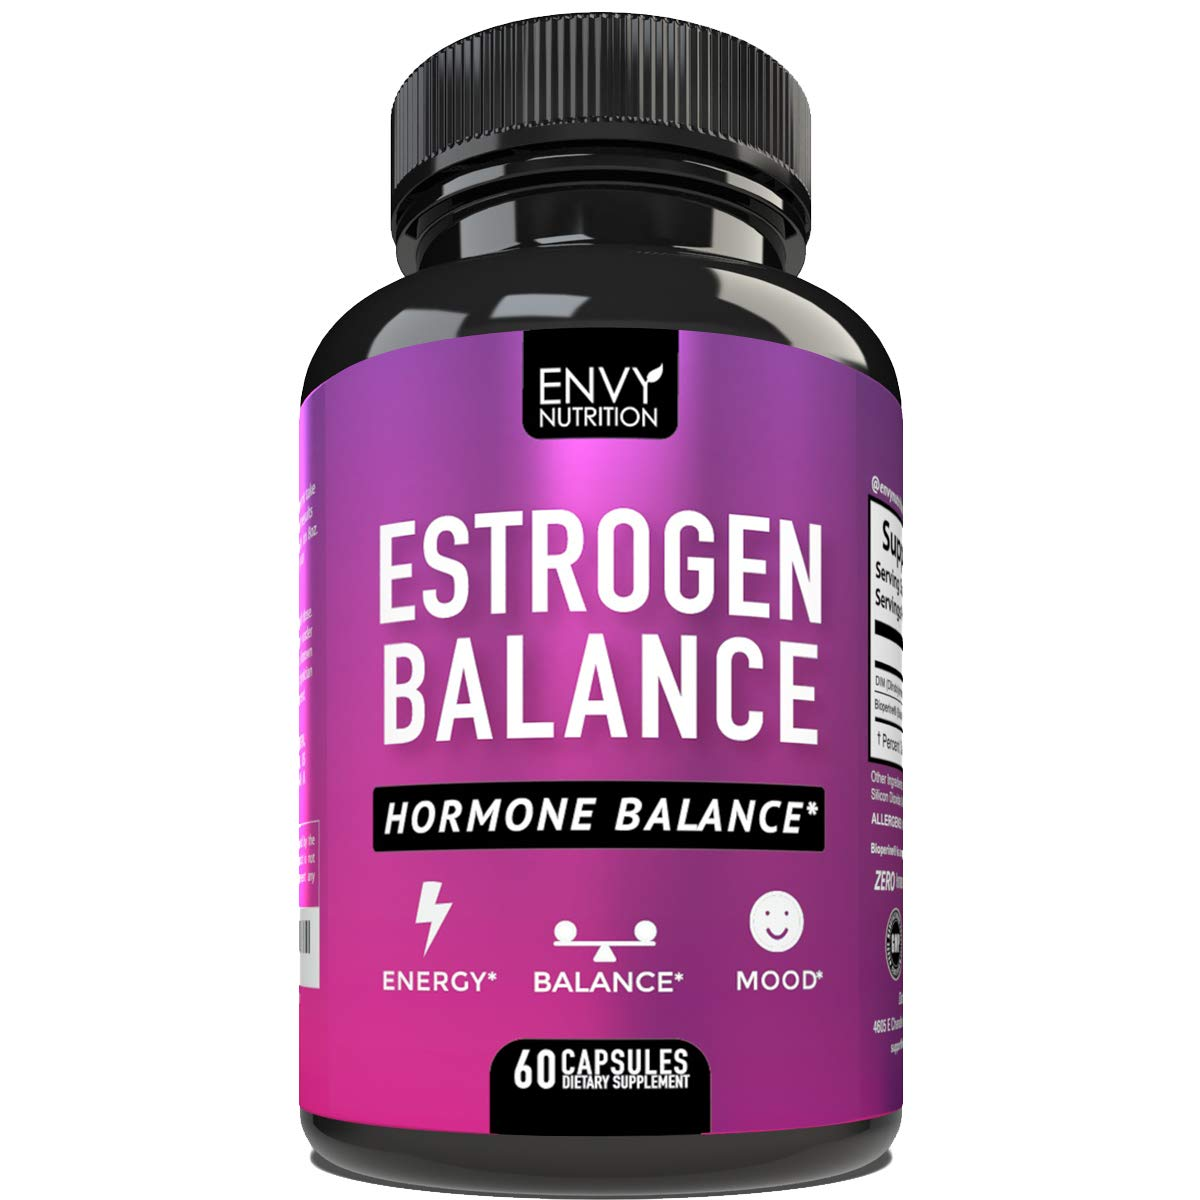 Estrogen Balance - Hormone Balance for Women with DIM- Menopause Relief, Estrogen Blocker and Hormonal Acne Treatment - Plus BioPerine - 60 Capsules